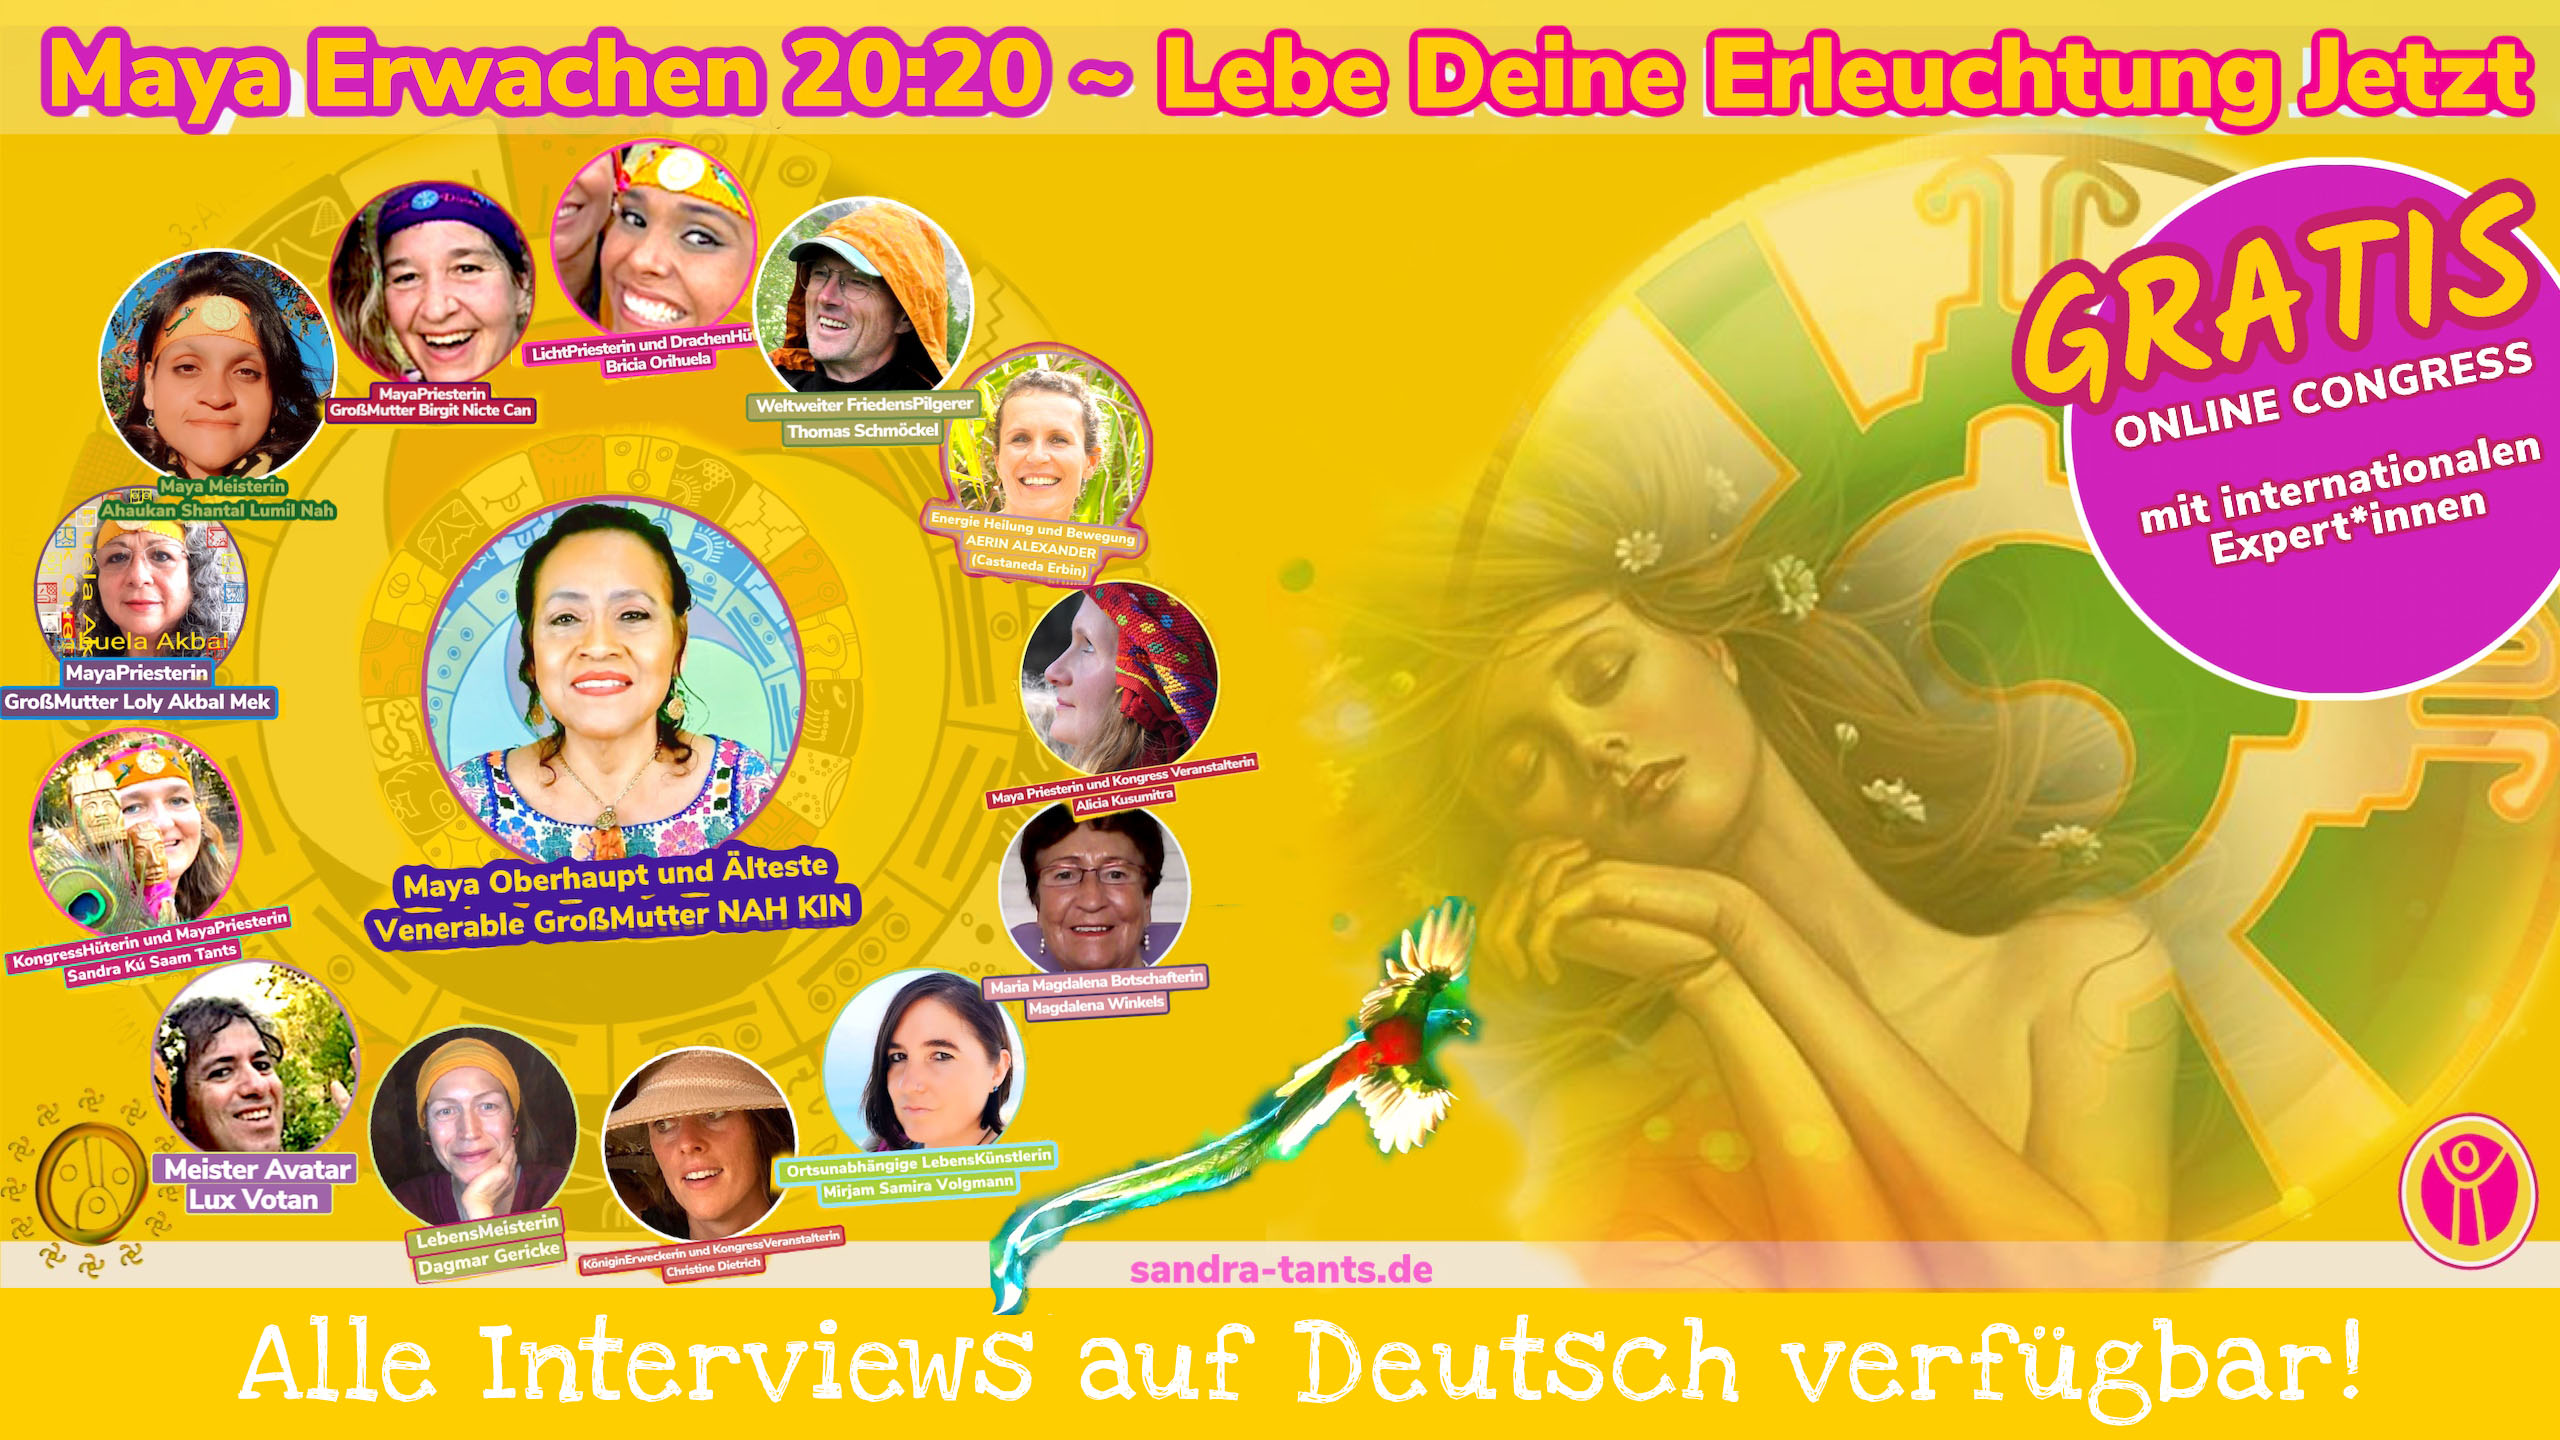 Kongress-Header MayaErwachen2020-Kongress